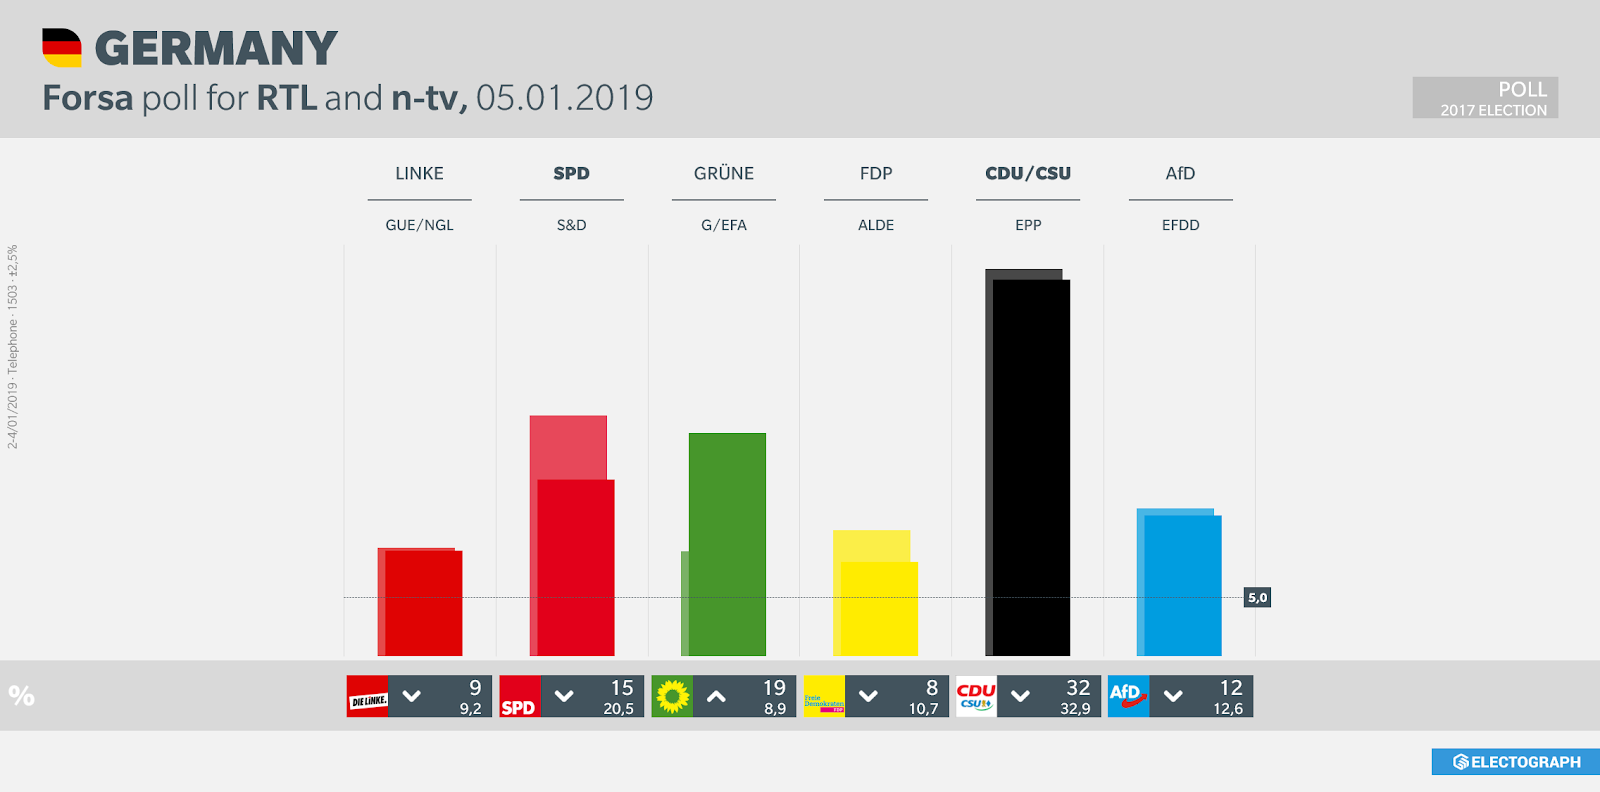 GERMANY: Forsa poll chart for RTL and n-tv, 5 January 2019